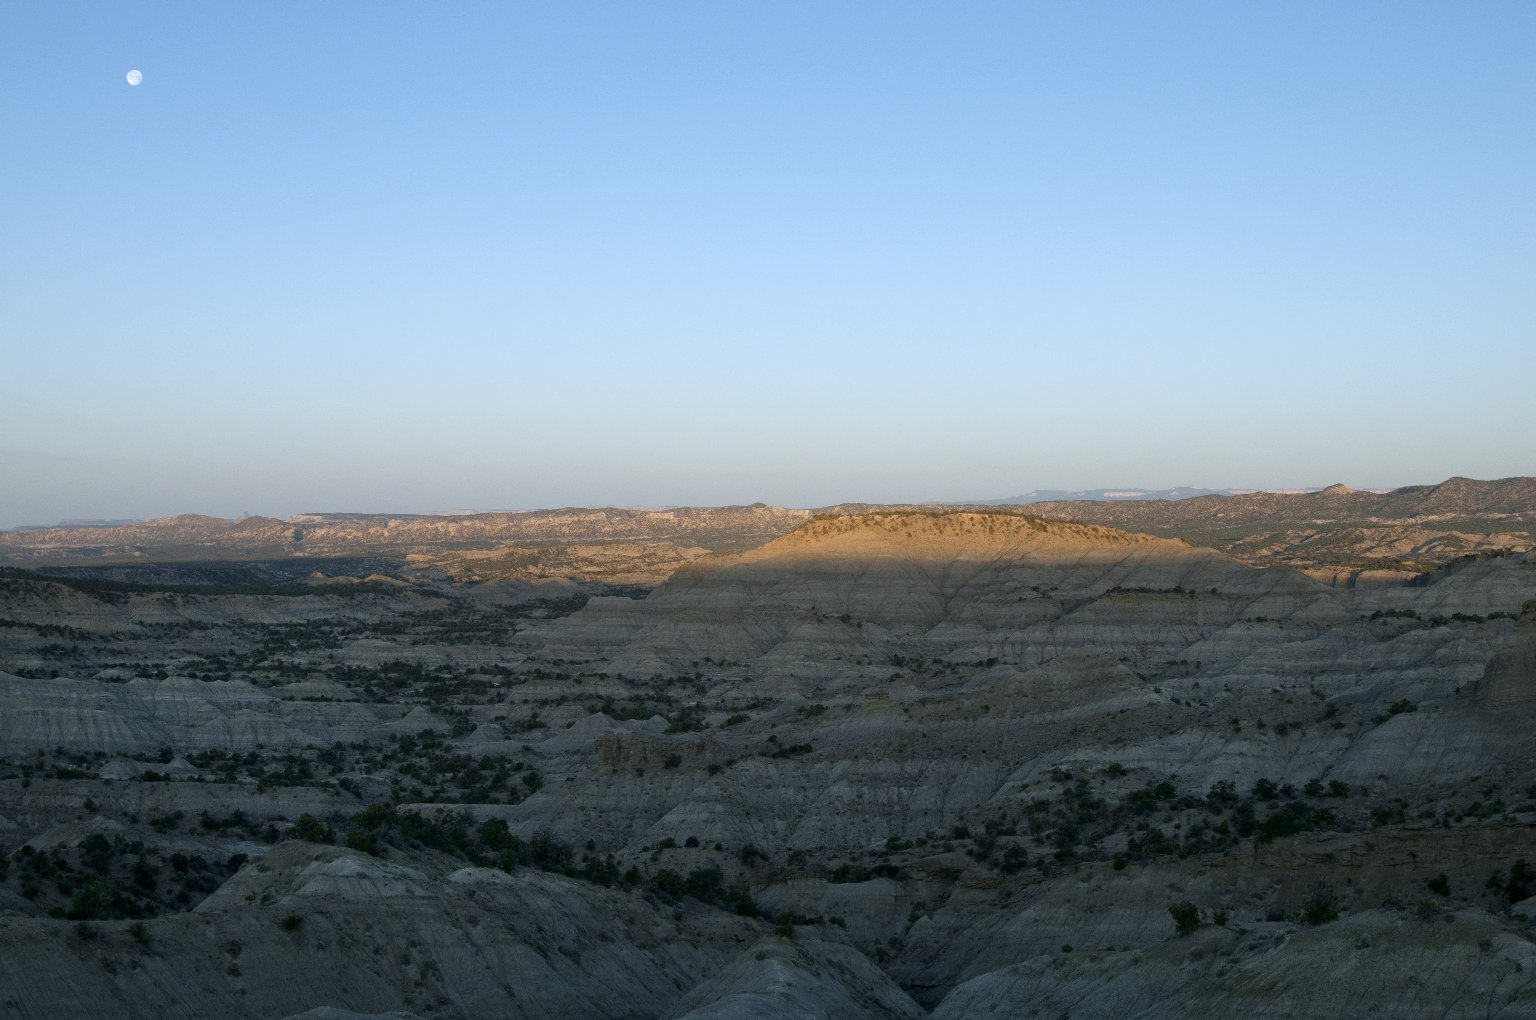 Sunrise on the Kaiparowits Plateau.